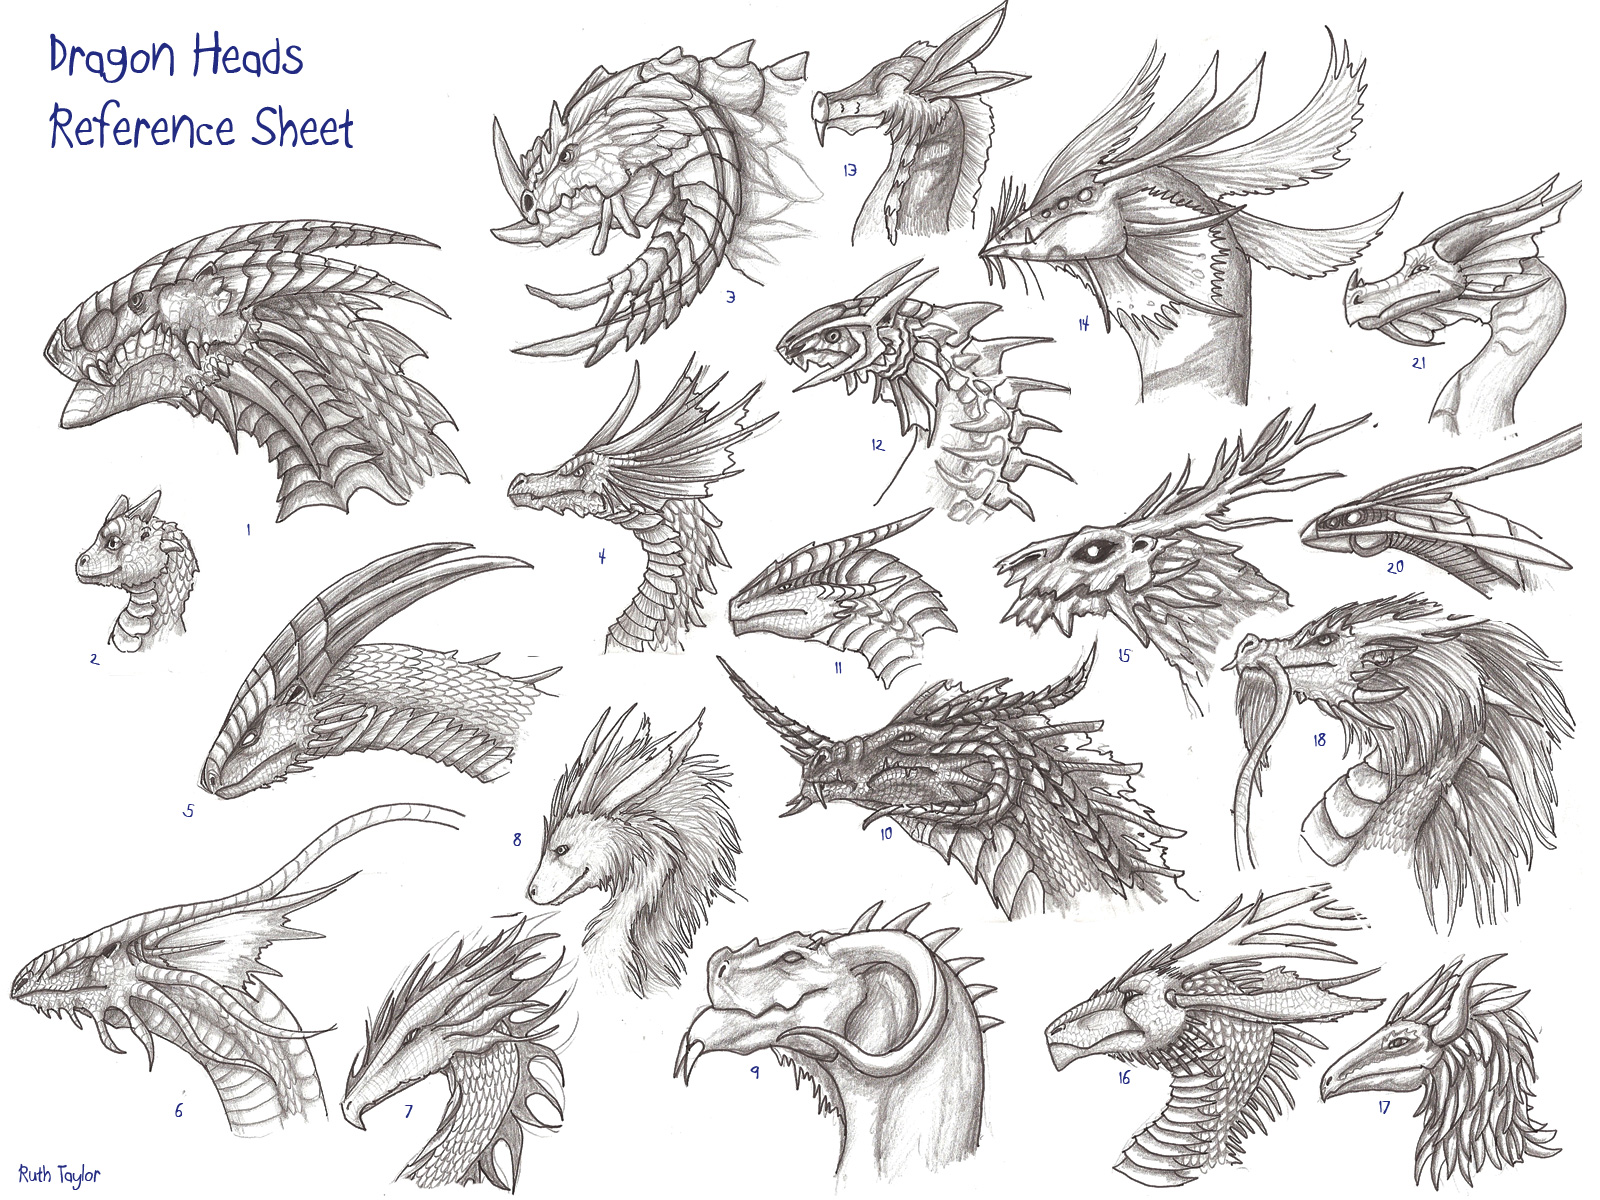 Drawn amour dragon head Reference archir on head